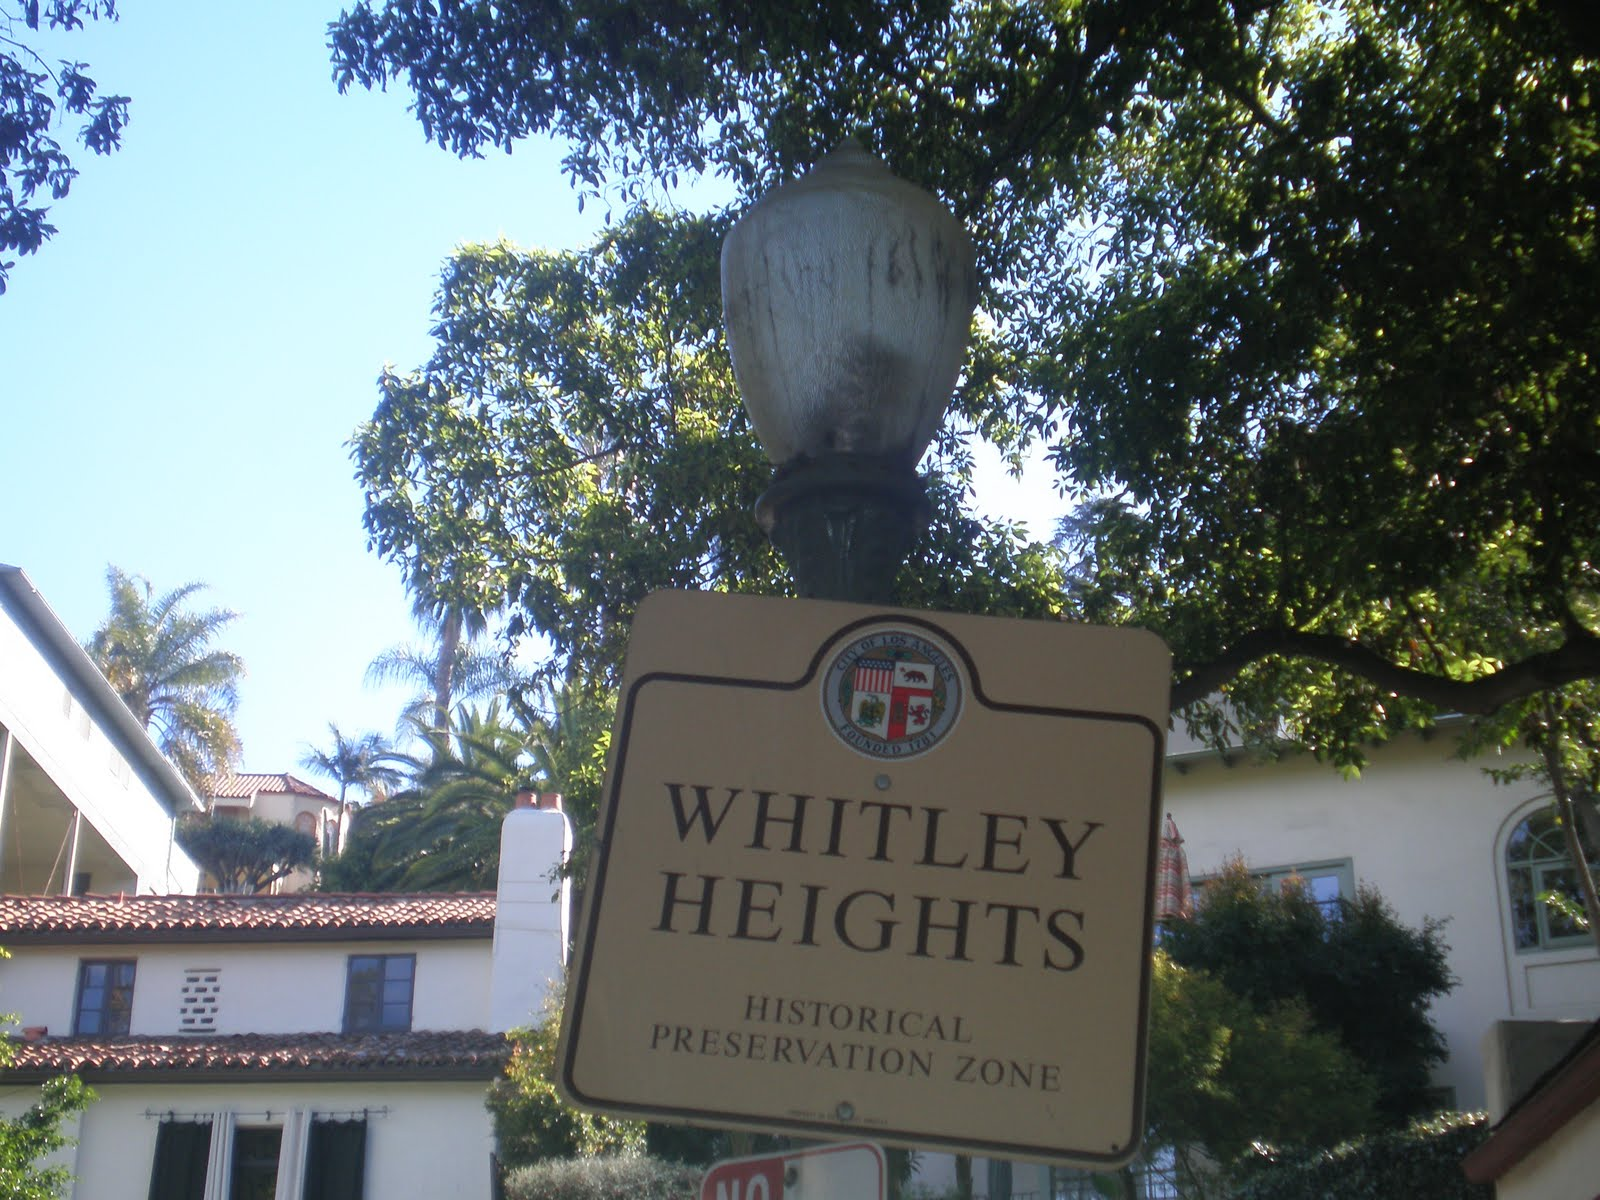 Walk  Whitley Heights